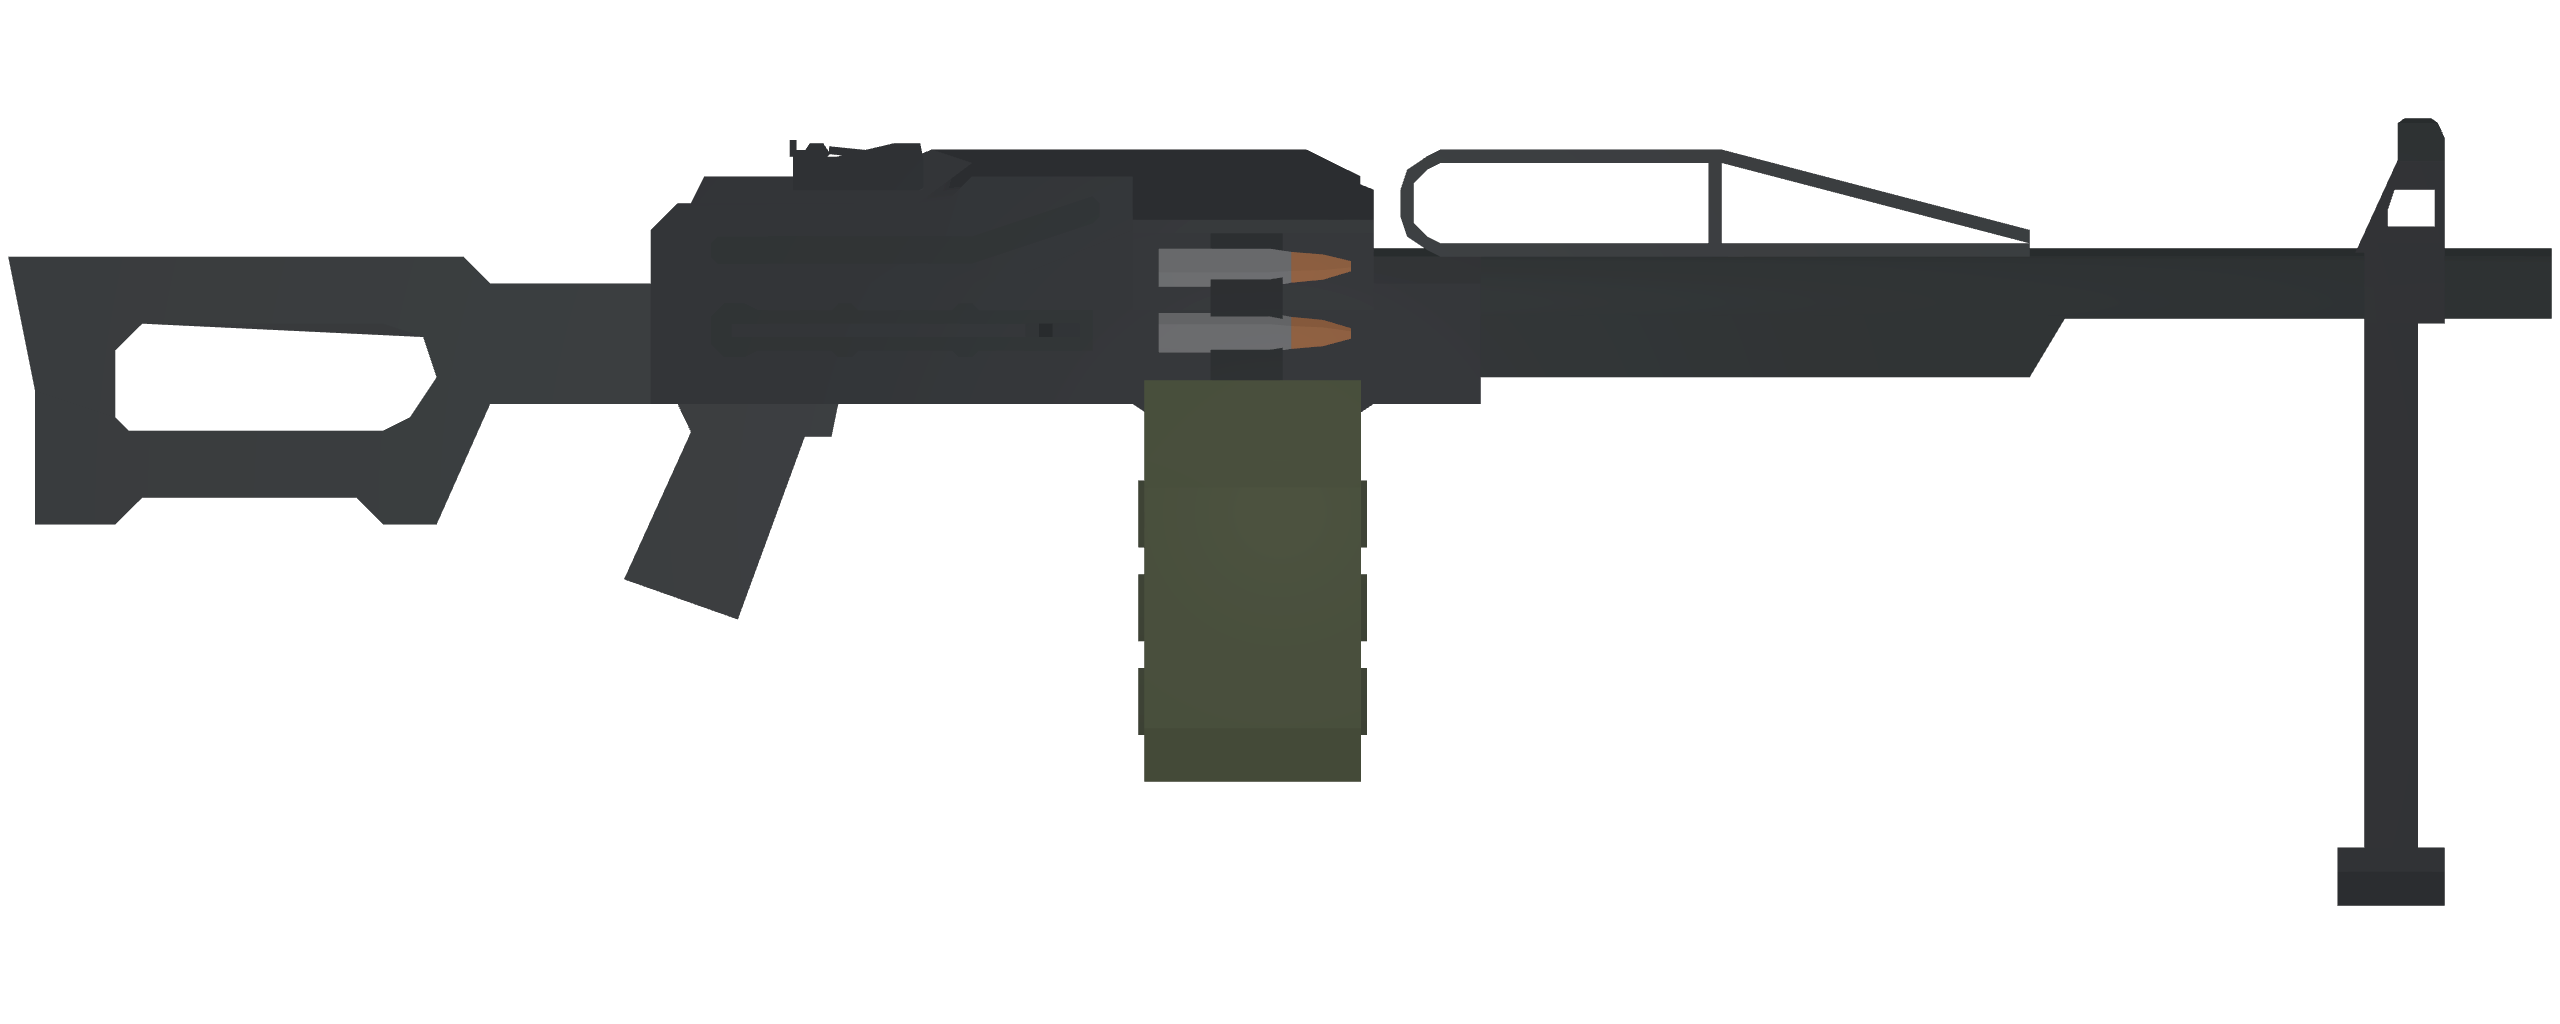 Unturned Uncreated Warfare Mods & All ID List + Attachments - Russian Weapons - 3D50546